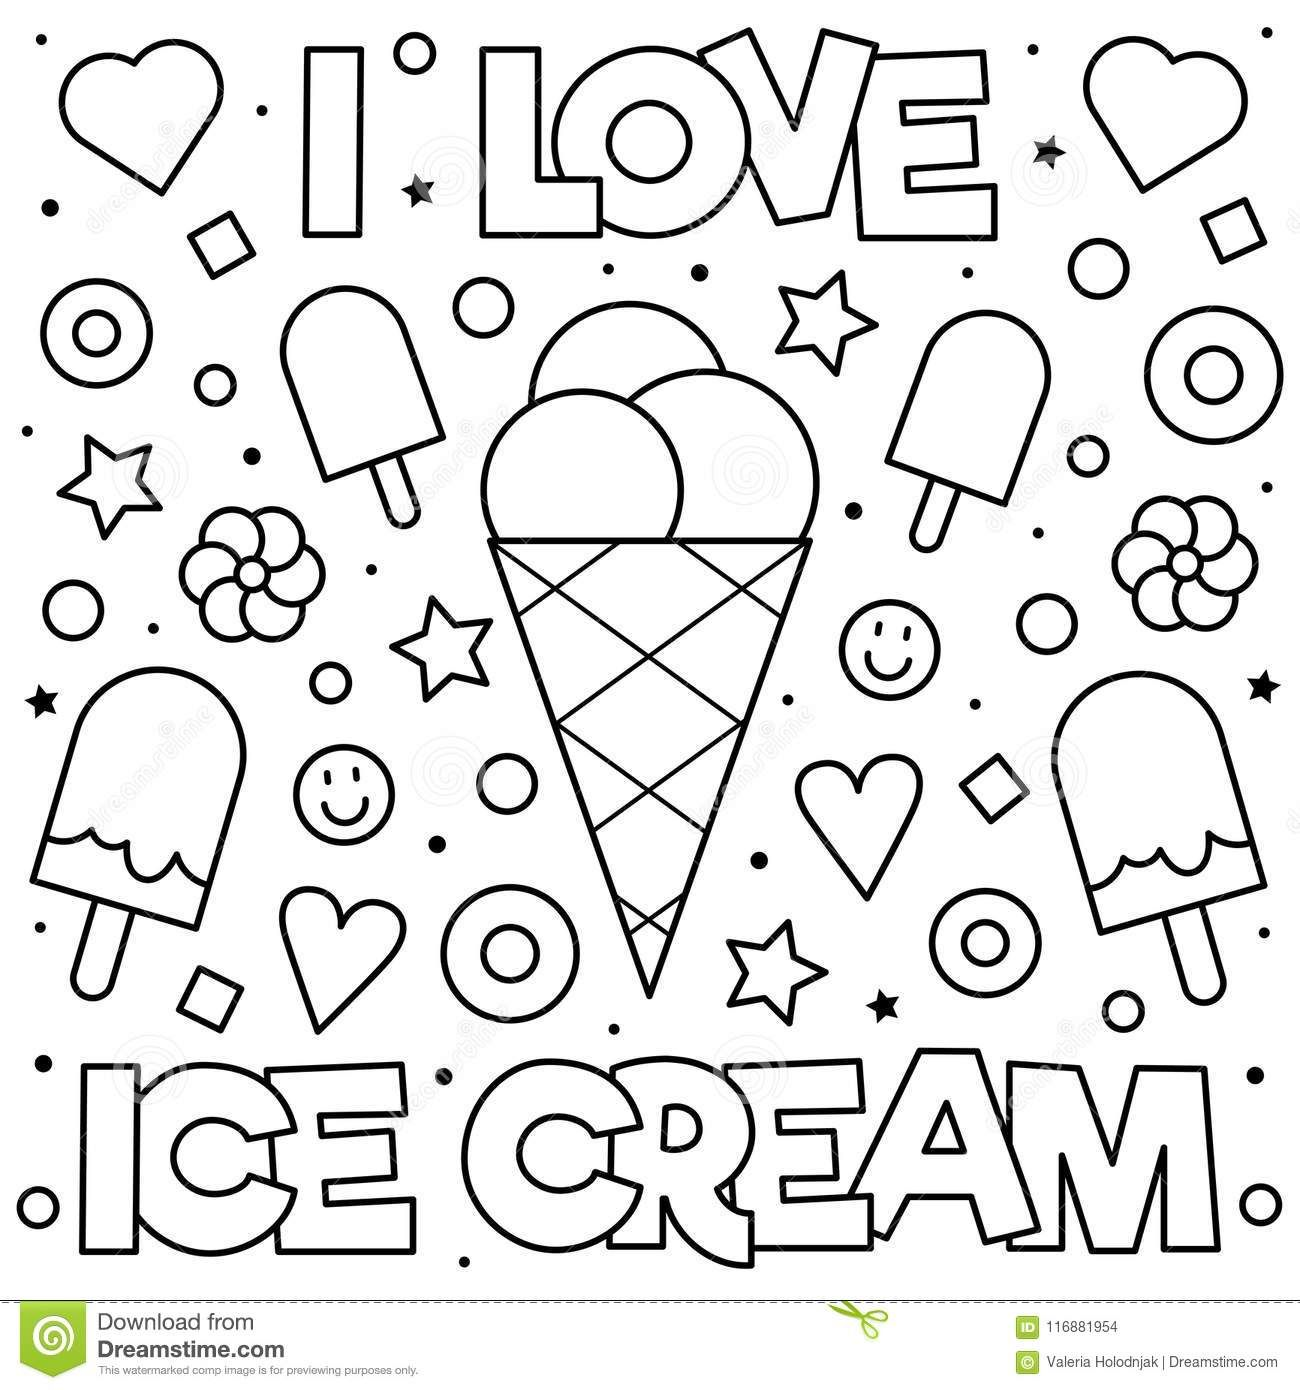 Image result for ice cream drawing i love ice cream | Free ...